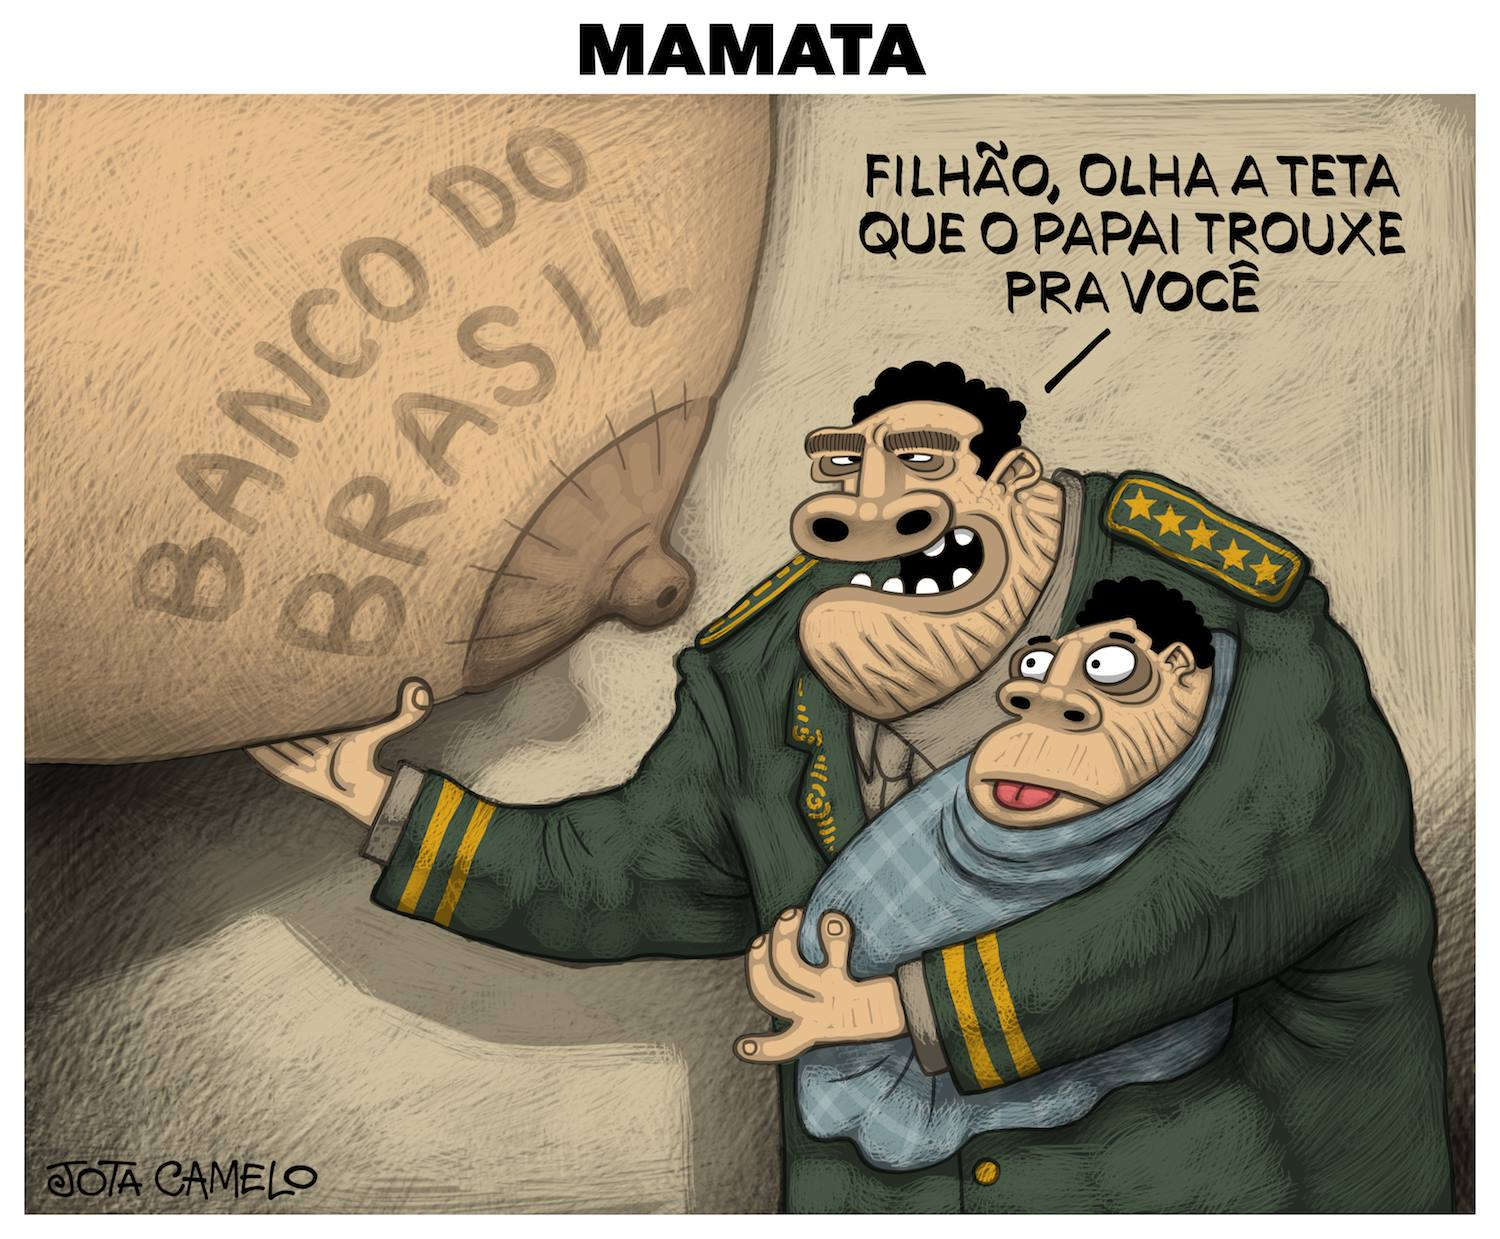 A Mamata do General Mourão